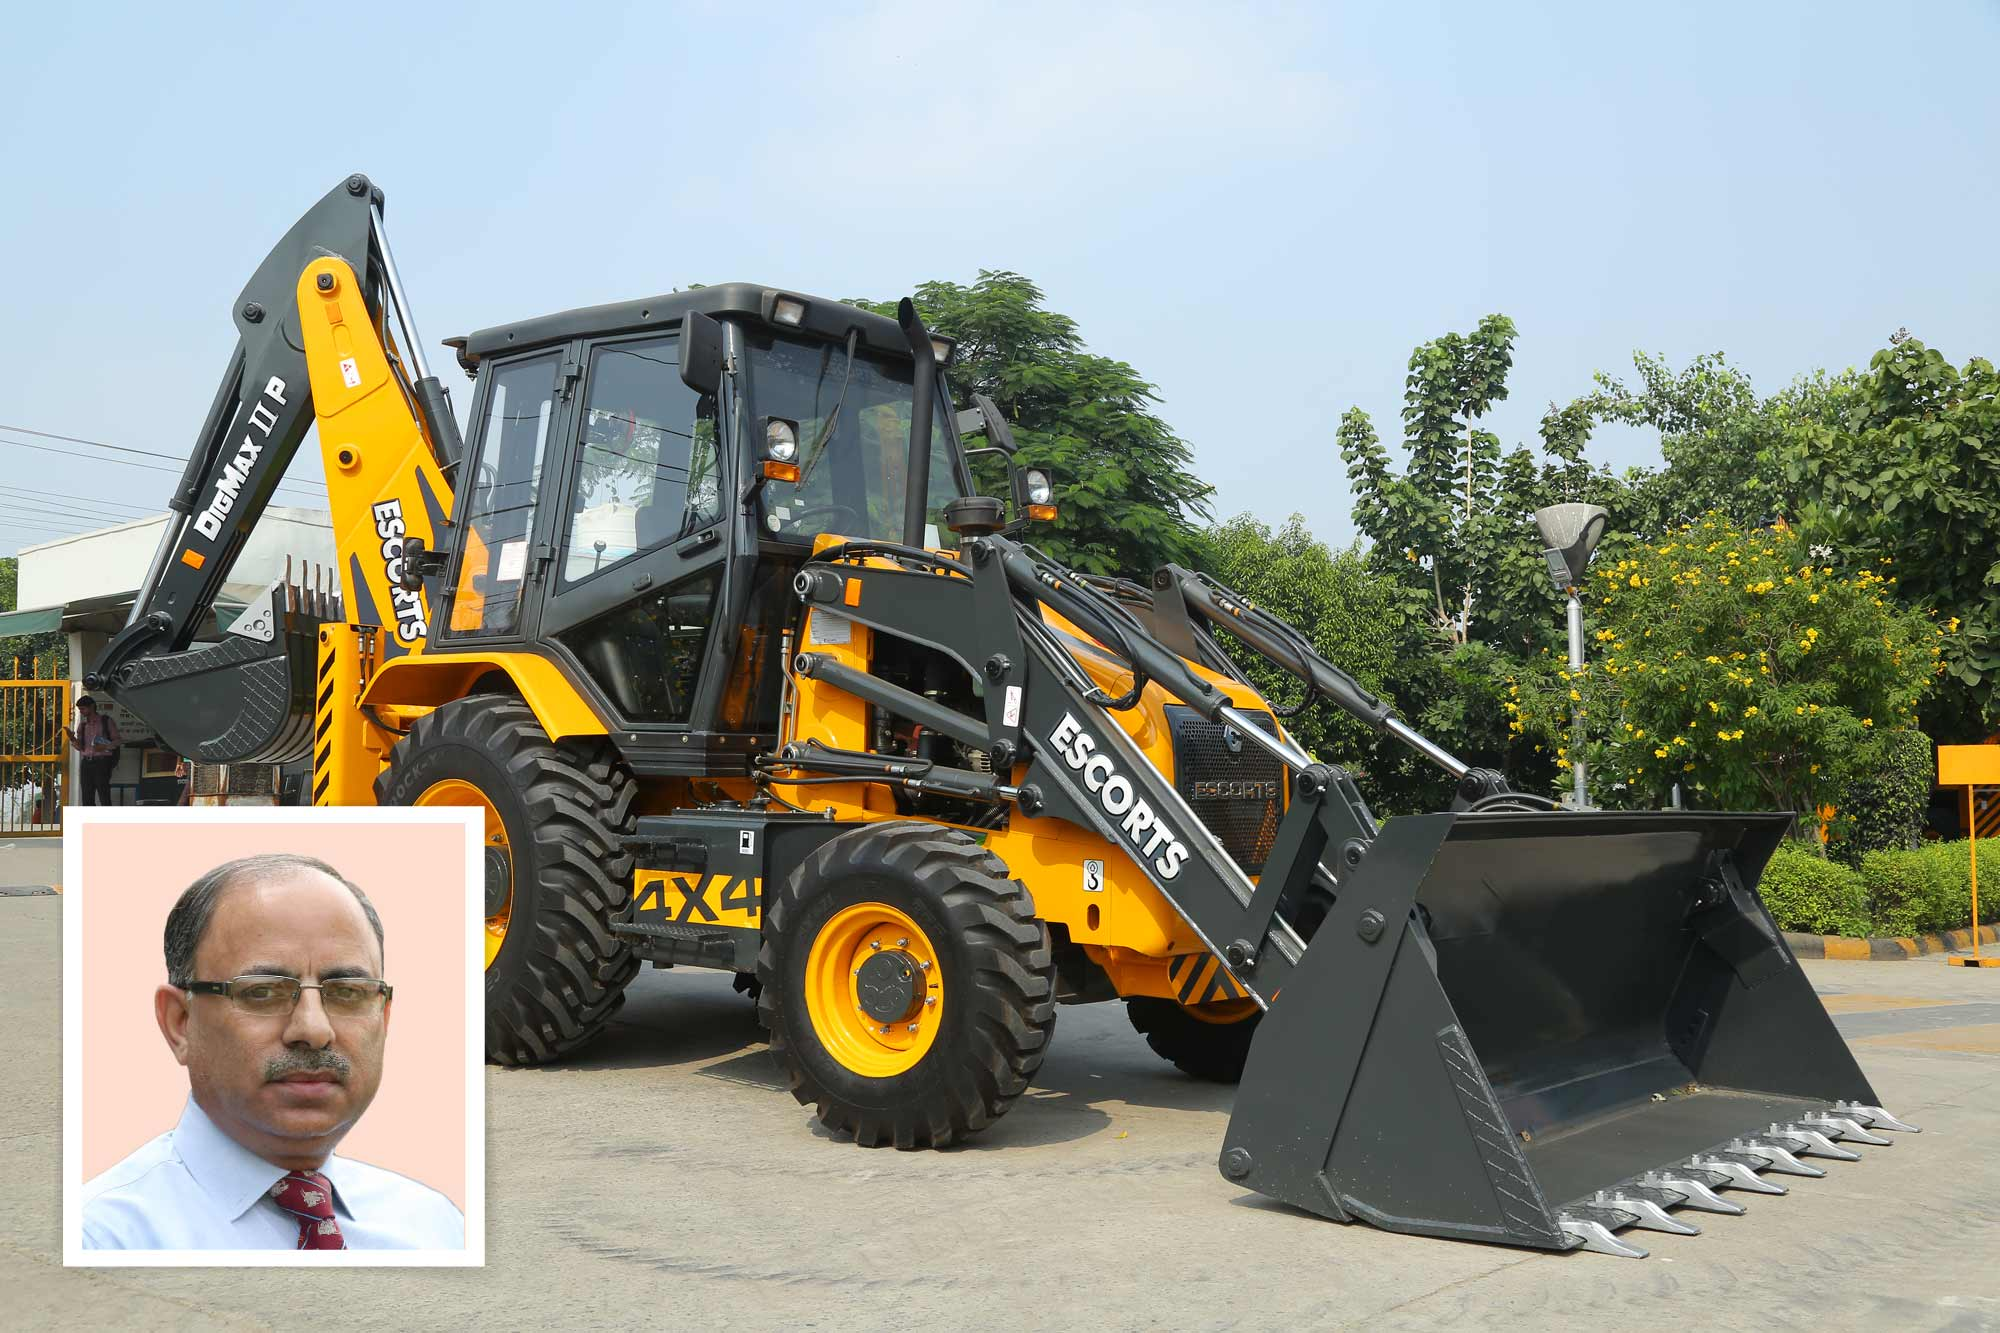 Escorts CE aims to boost exports with DIGMAX-II P Backhoe Loaders